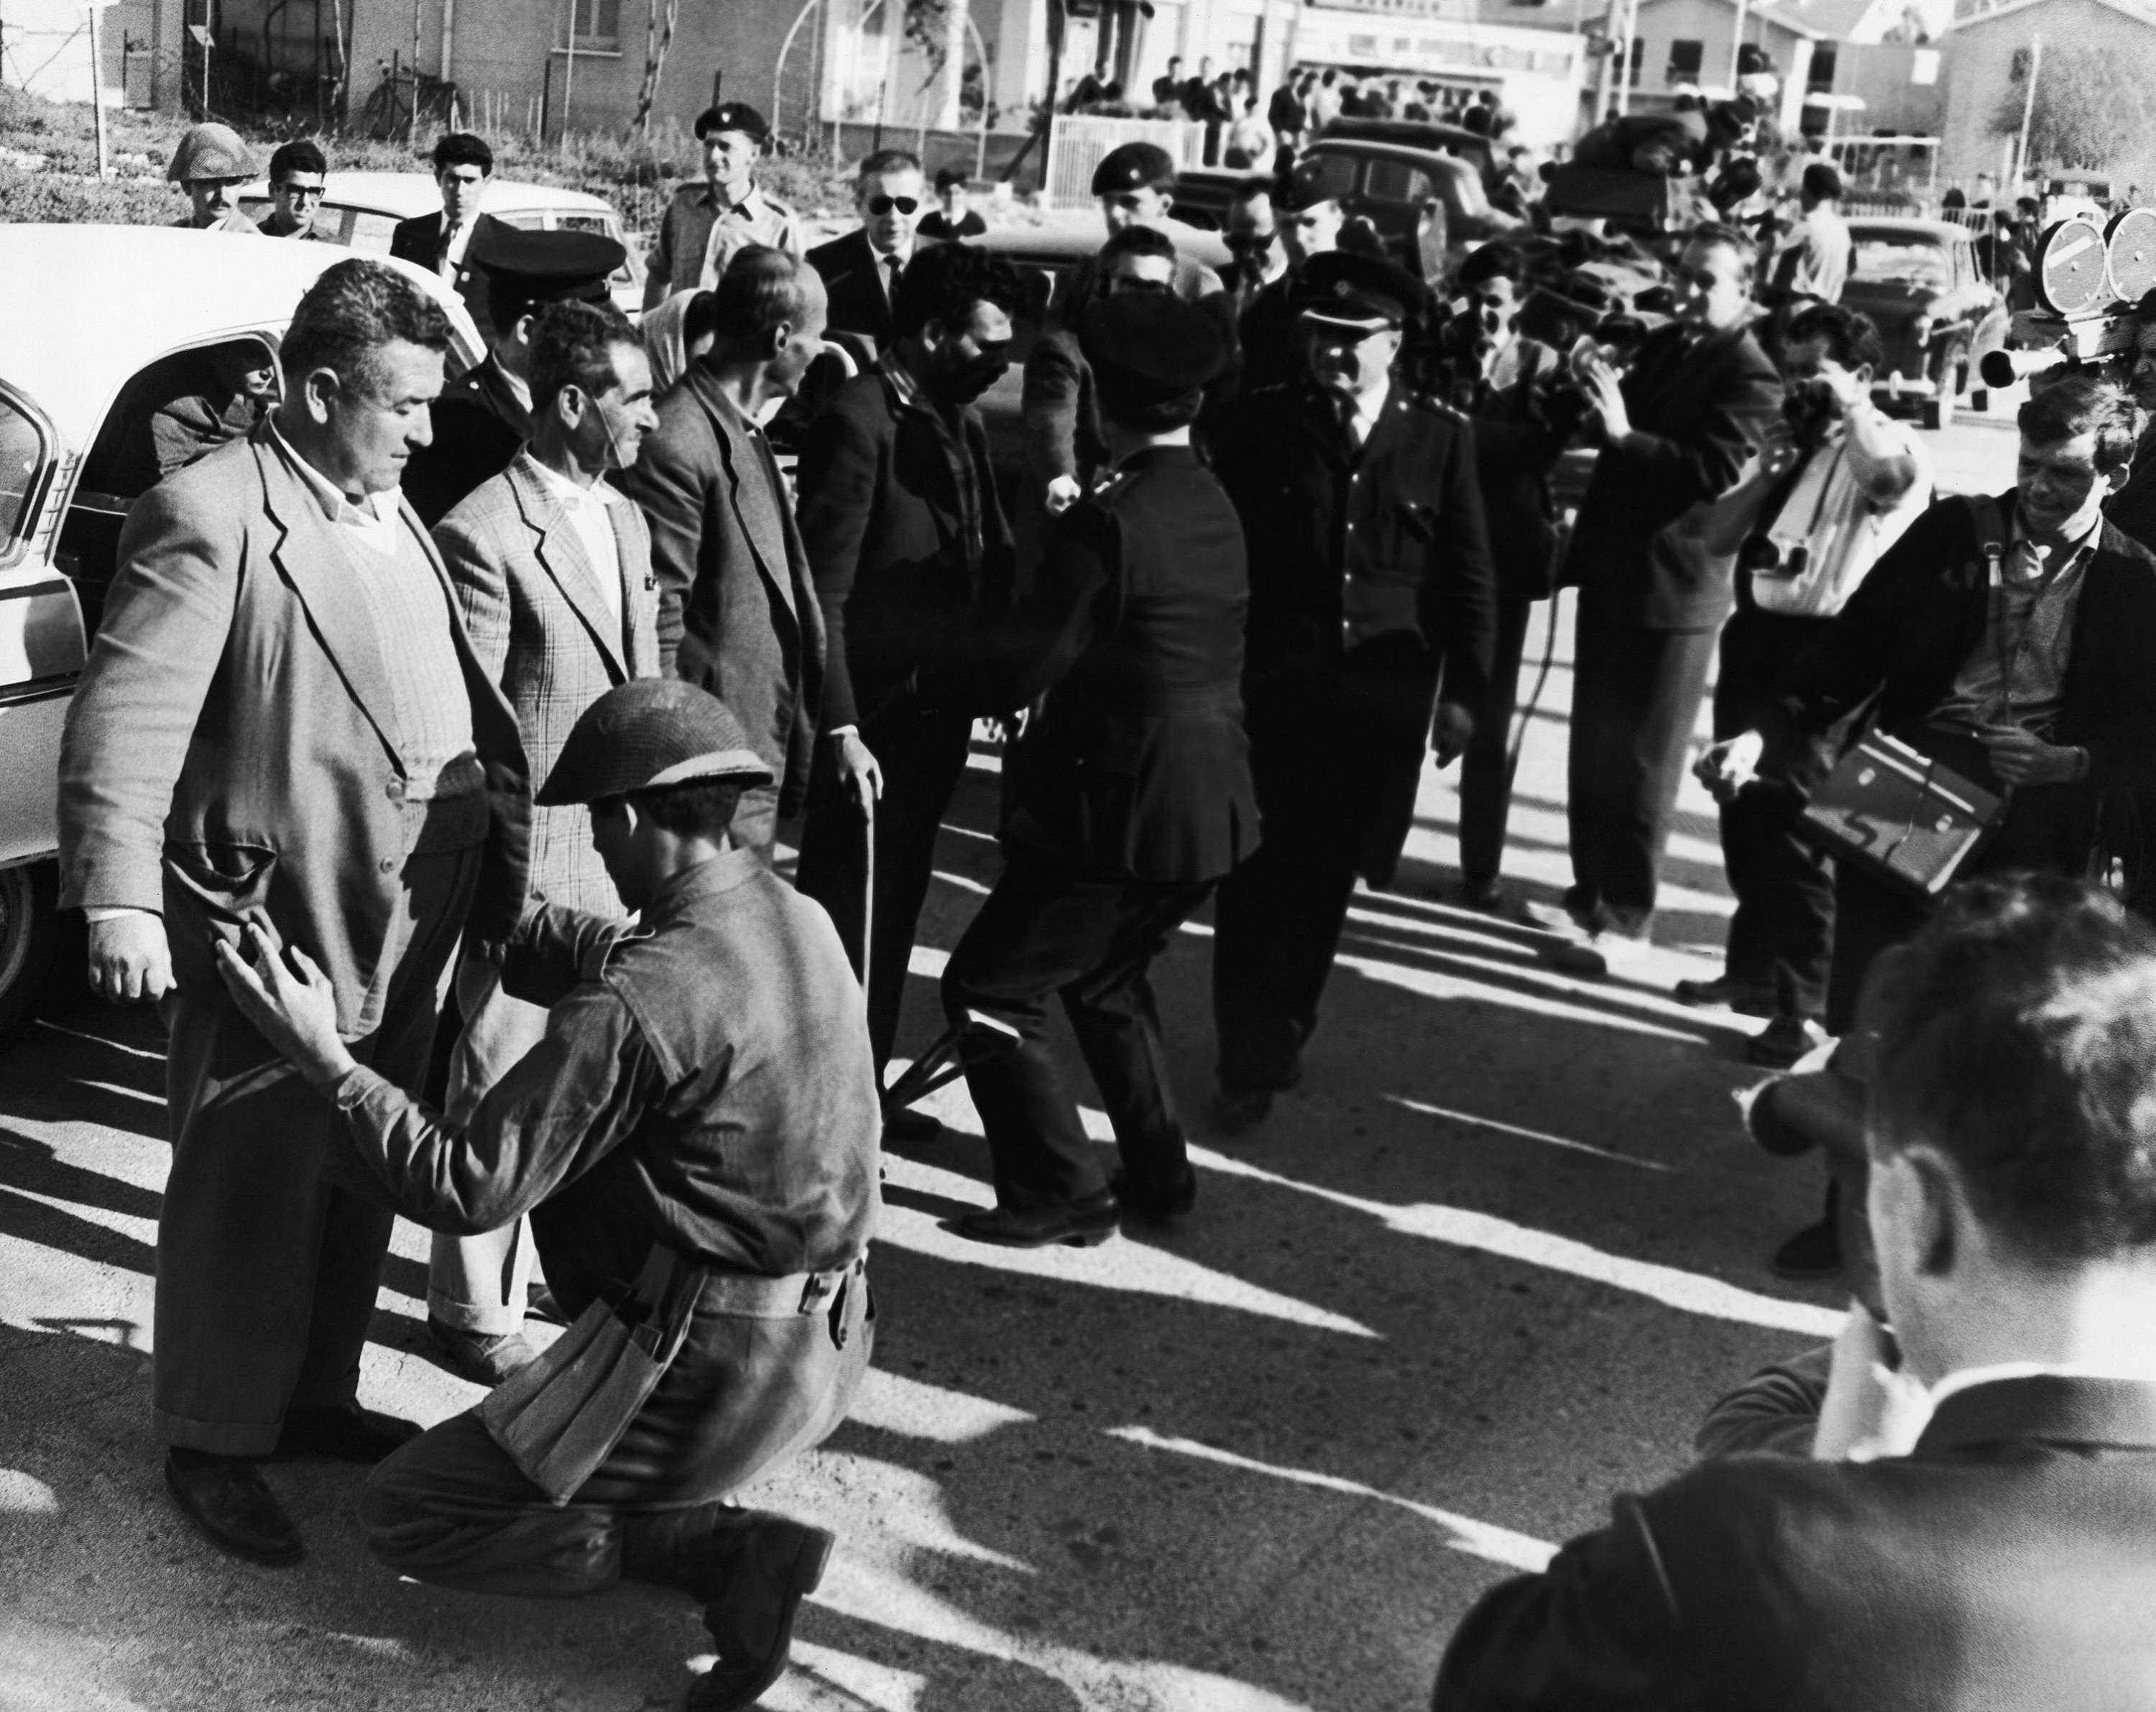 Greek police officers and a soldier search a party of Turkish Cypriots in Nicosia on March 13, 1964 before they left the city bound for Famagusta to bring back supplies by truck for Turkish Cypriots living in the Old Quarter of Nicosia. A British officer keeps watch during the routine search but is not seen in this picture. The Turks who make the daily journey to Famagusta are escorted by British soldiers in Ferret armored cars. (AP Photo)